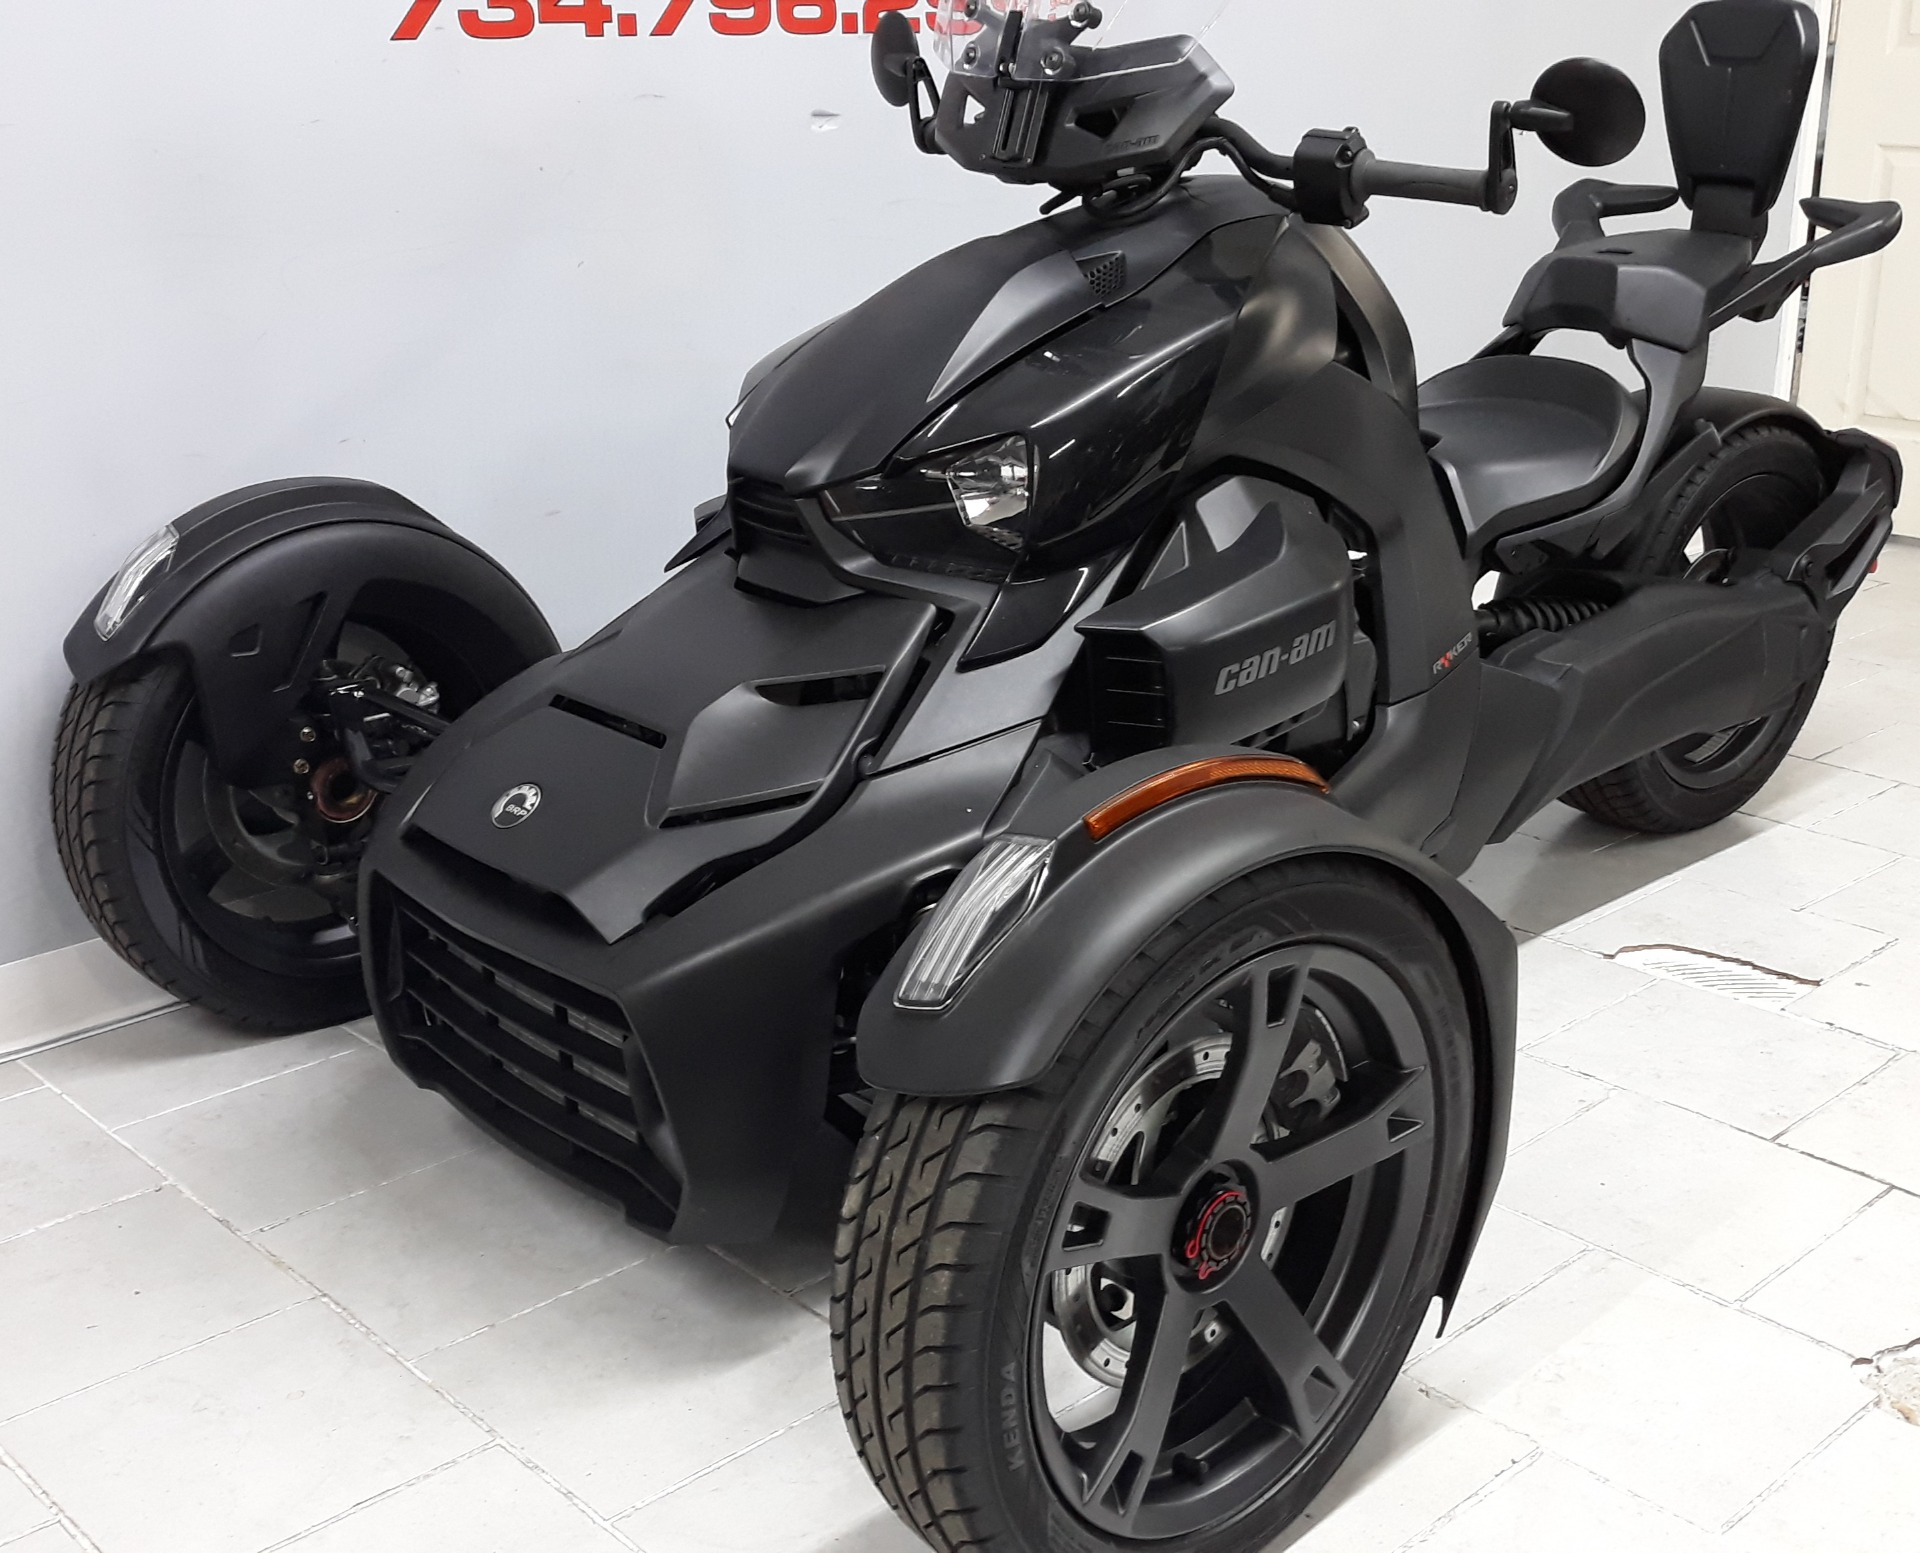 2019 Can-Am Ryker 600 ACE in Belleville, Michigan - Photo 12